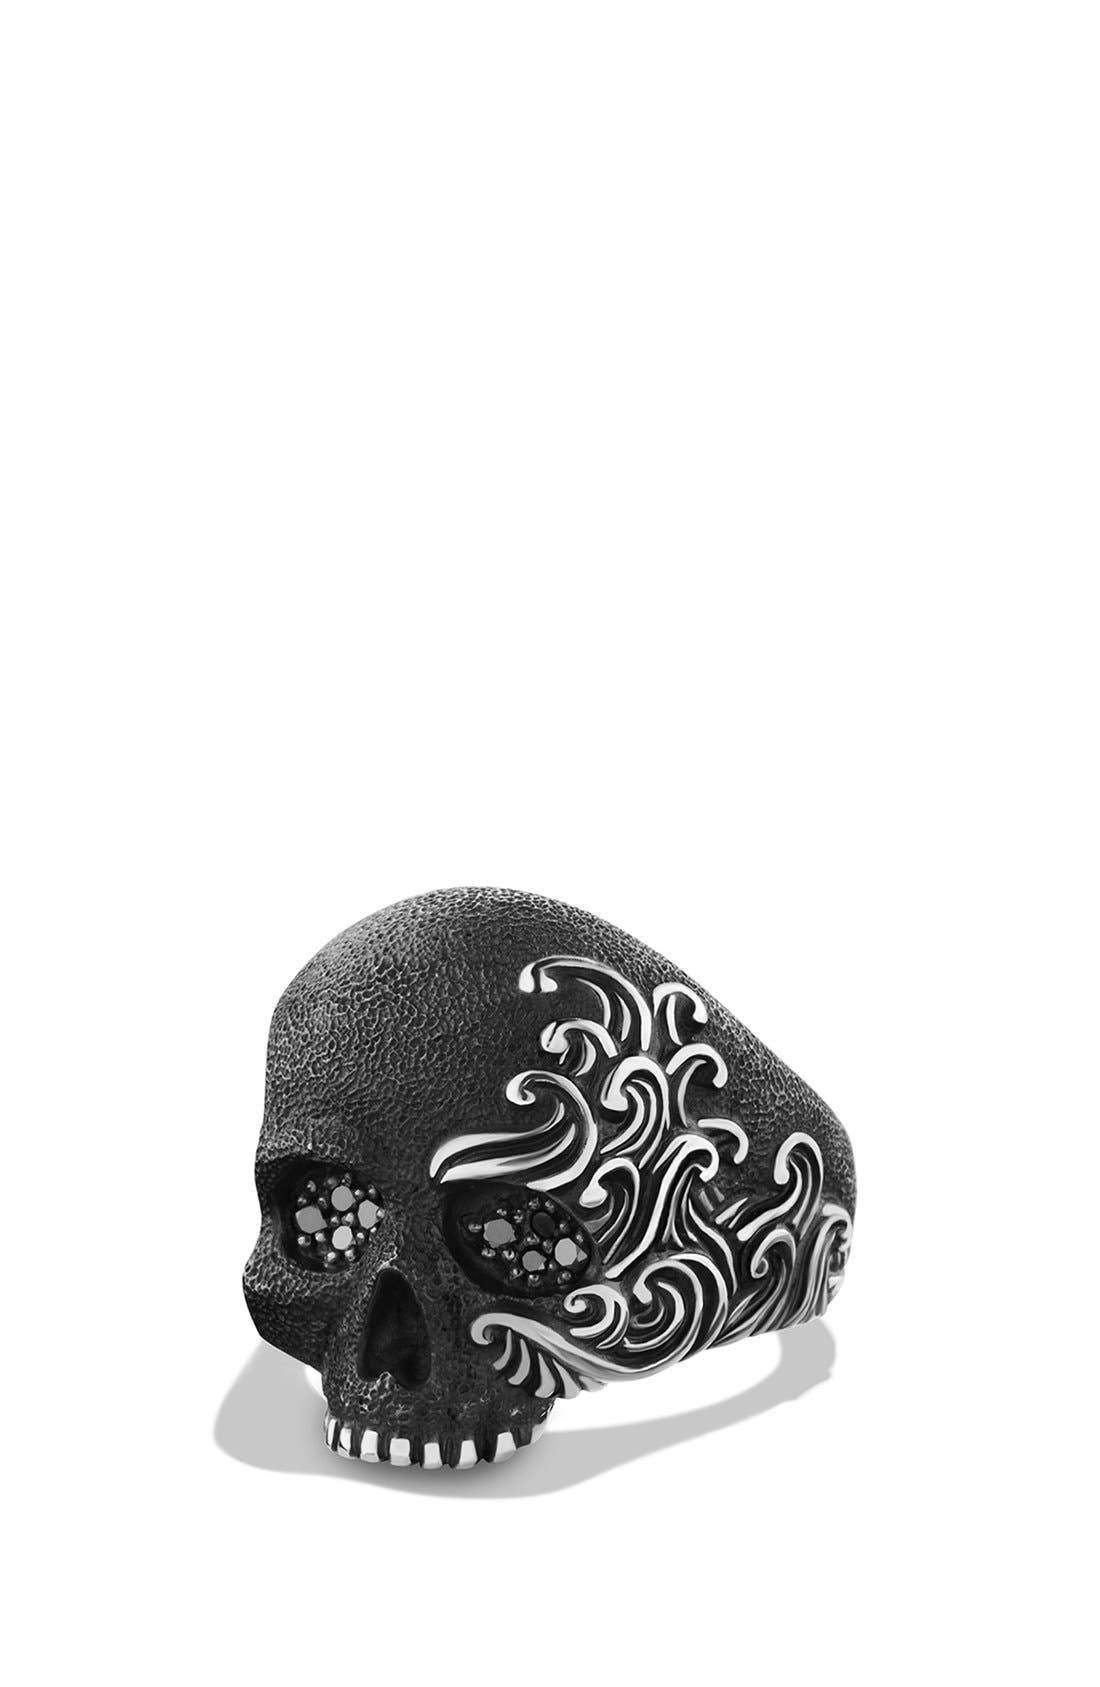 'Waves' Large Skull Ring with Black Diamonds,                             Main thumbnail 1, color,                             Black Diamond